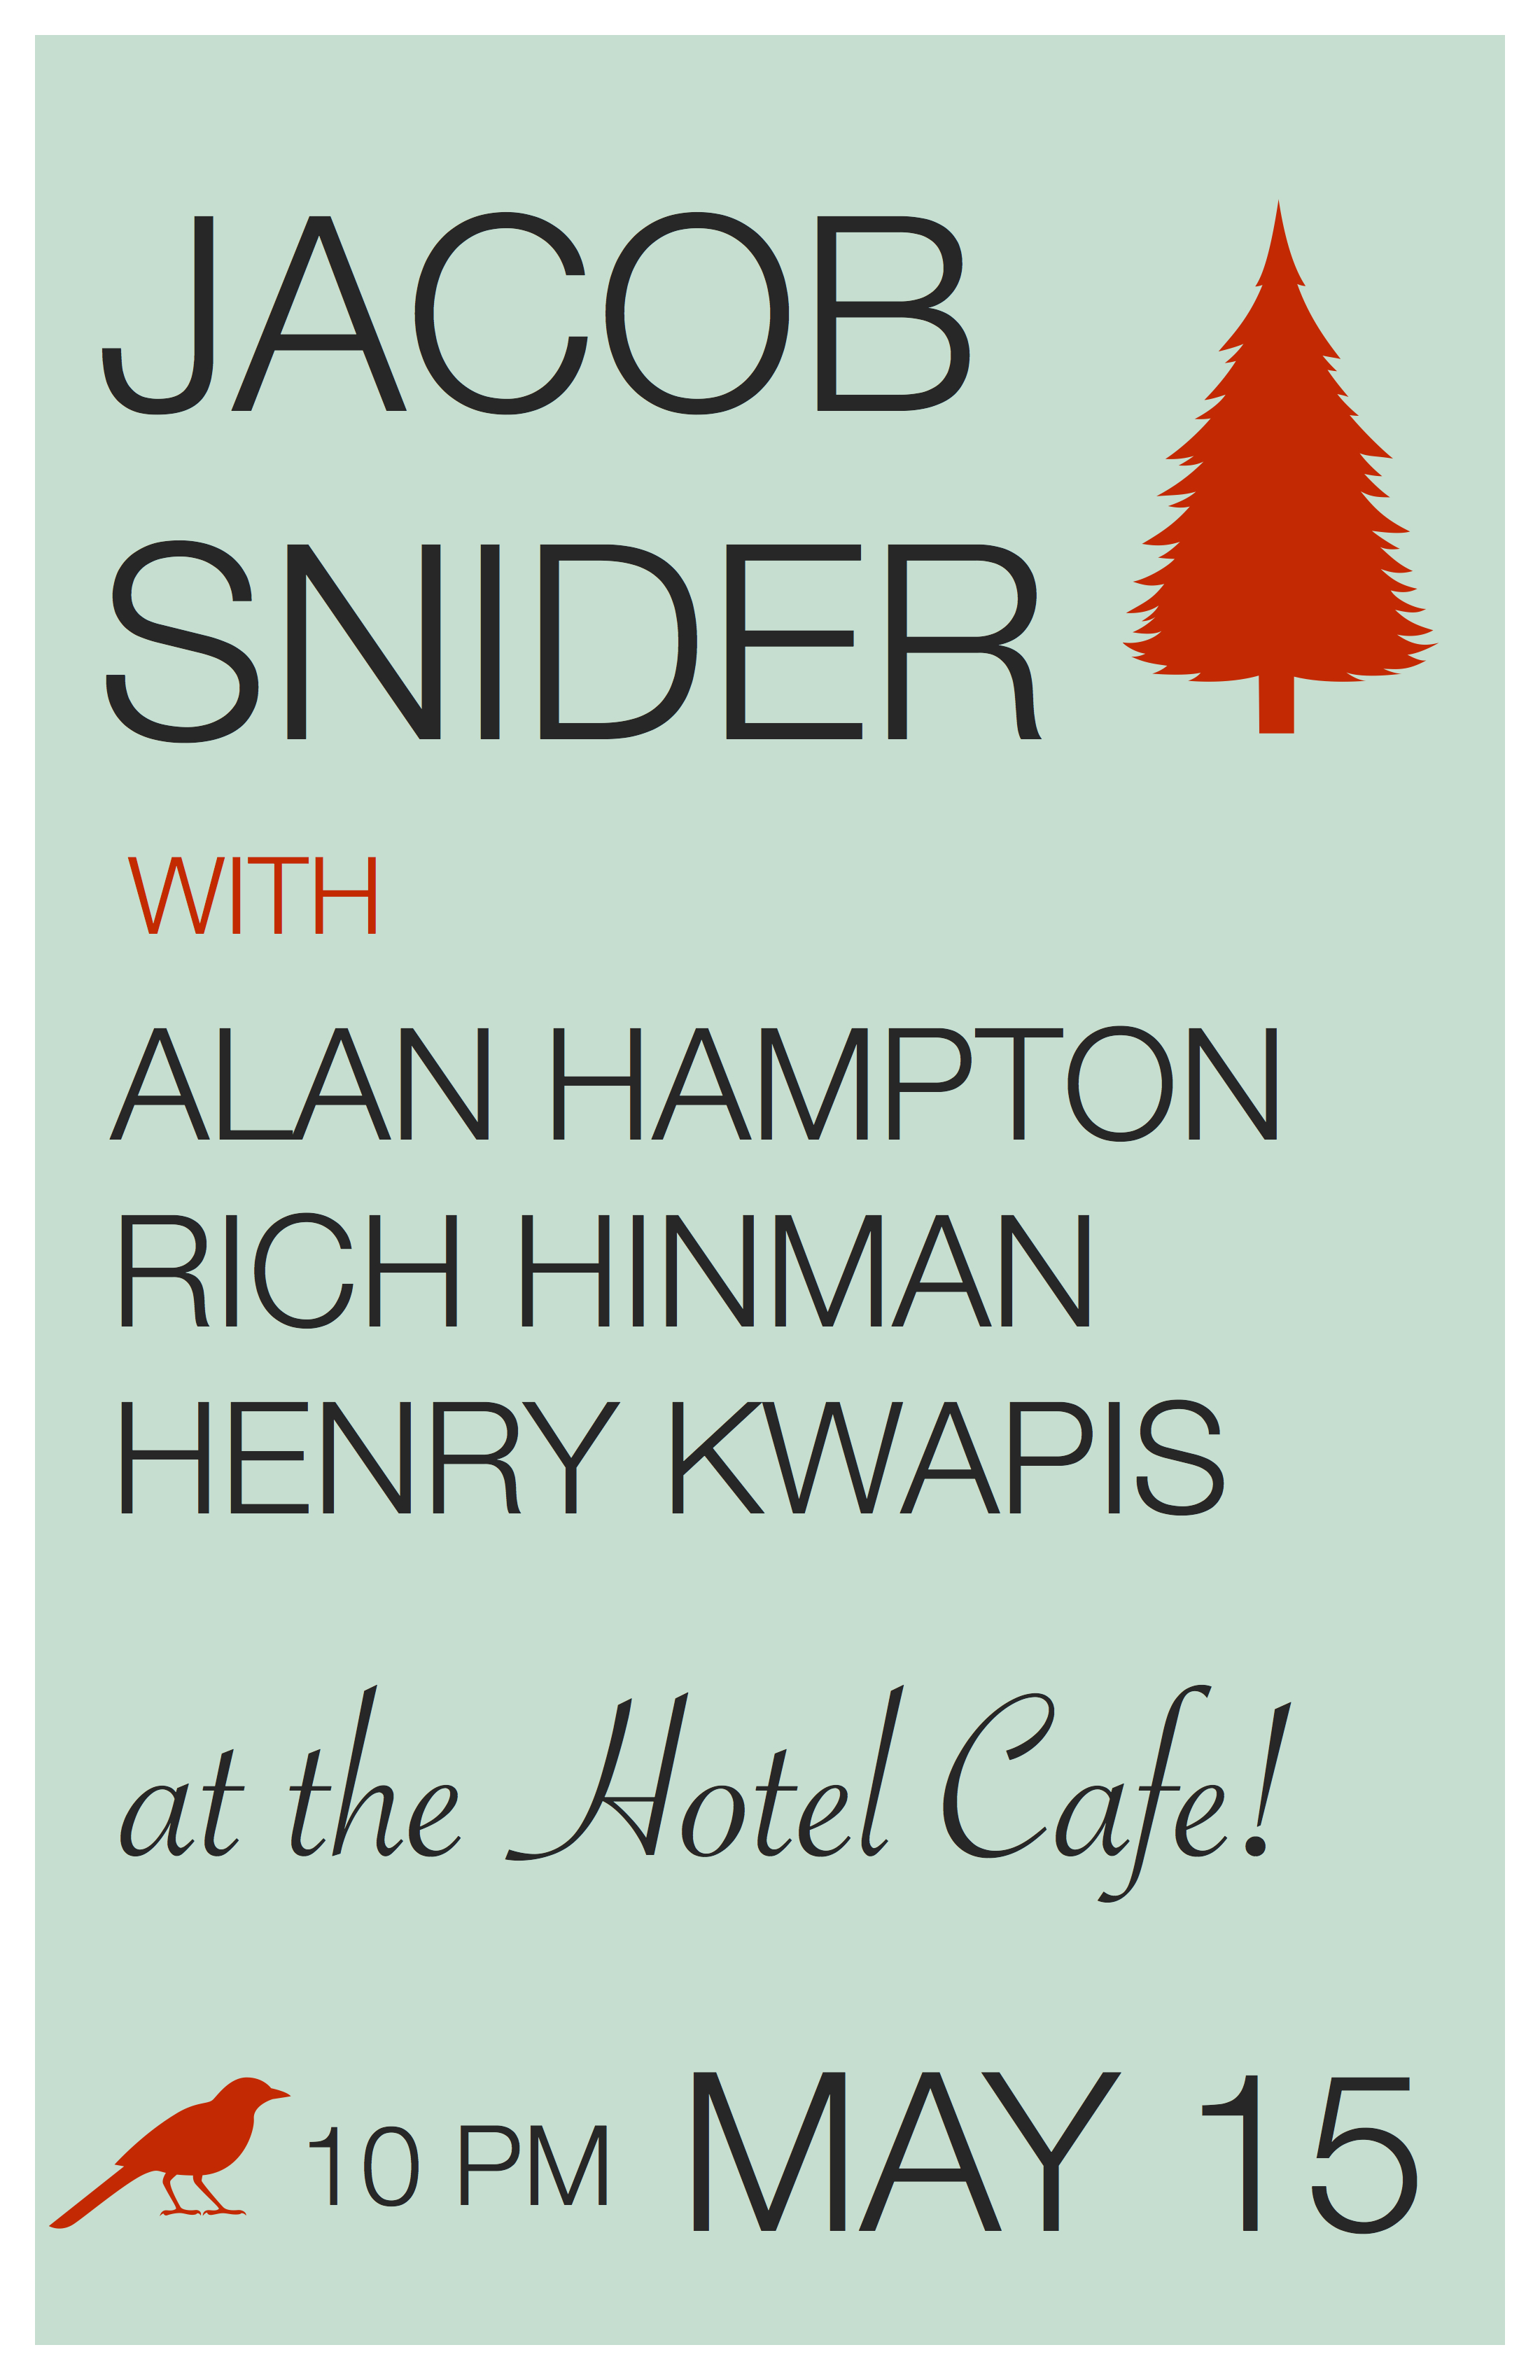 Hotel Cafe Revised 10pm.jpg